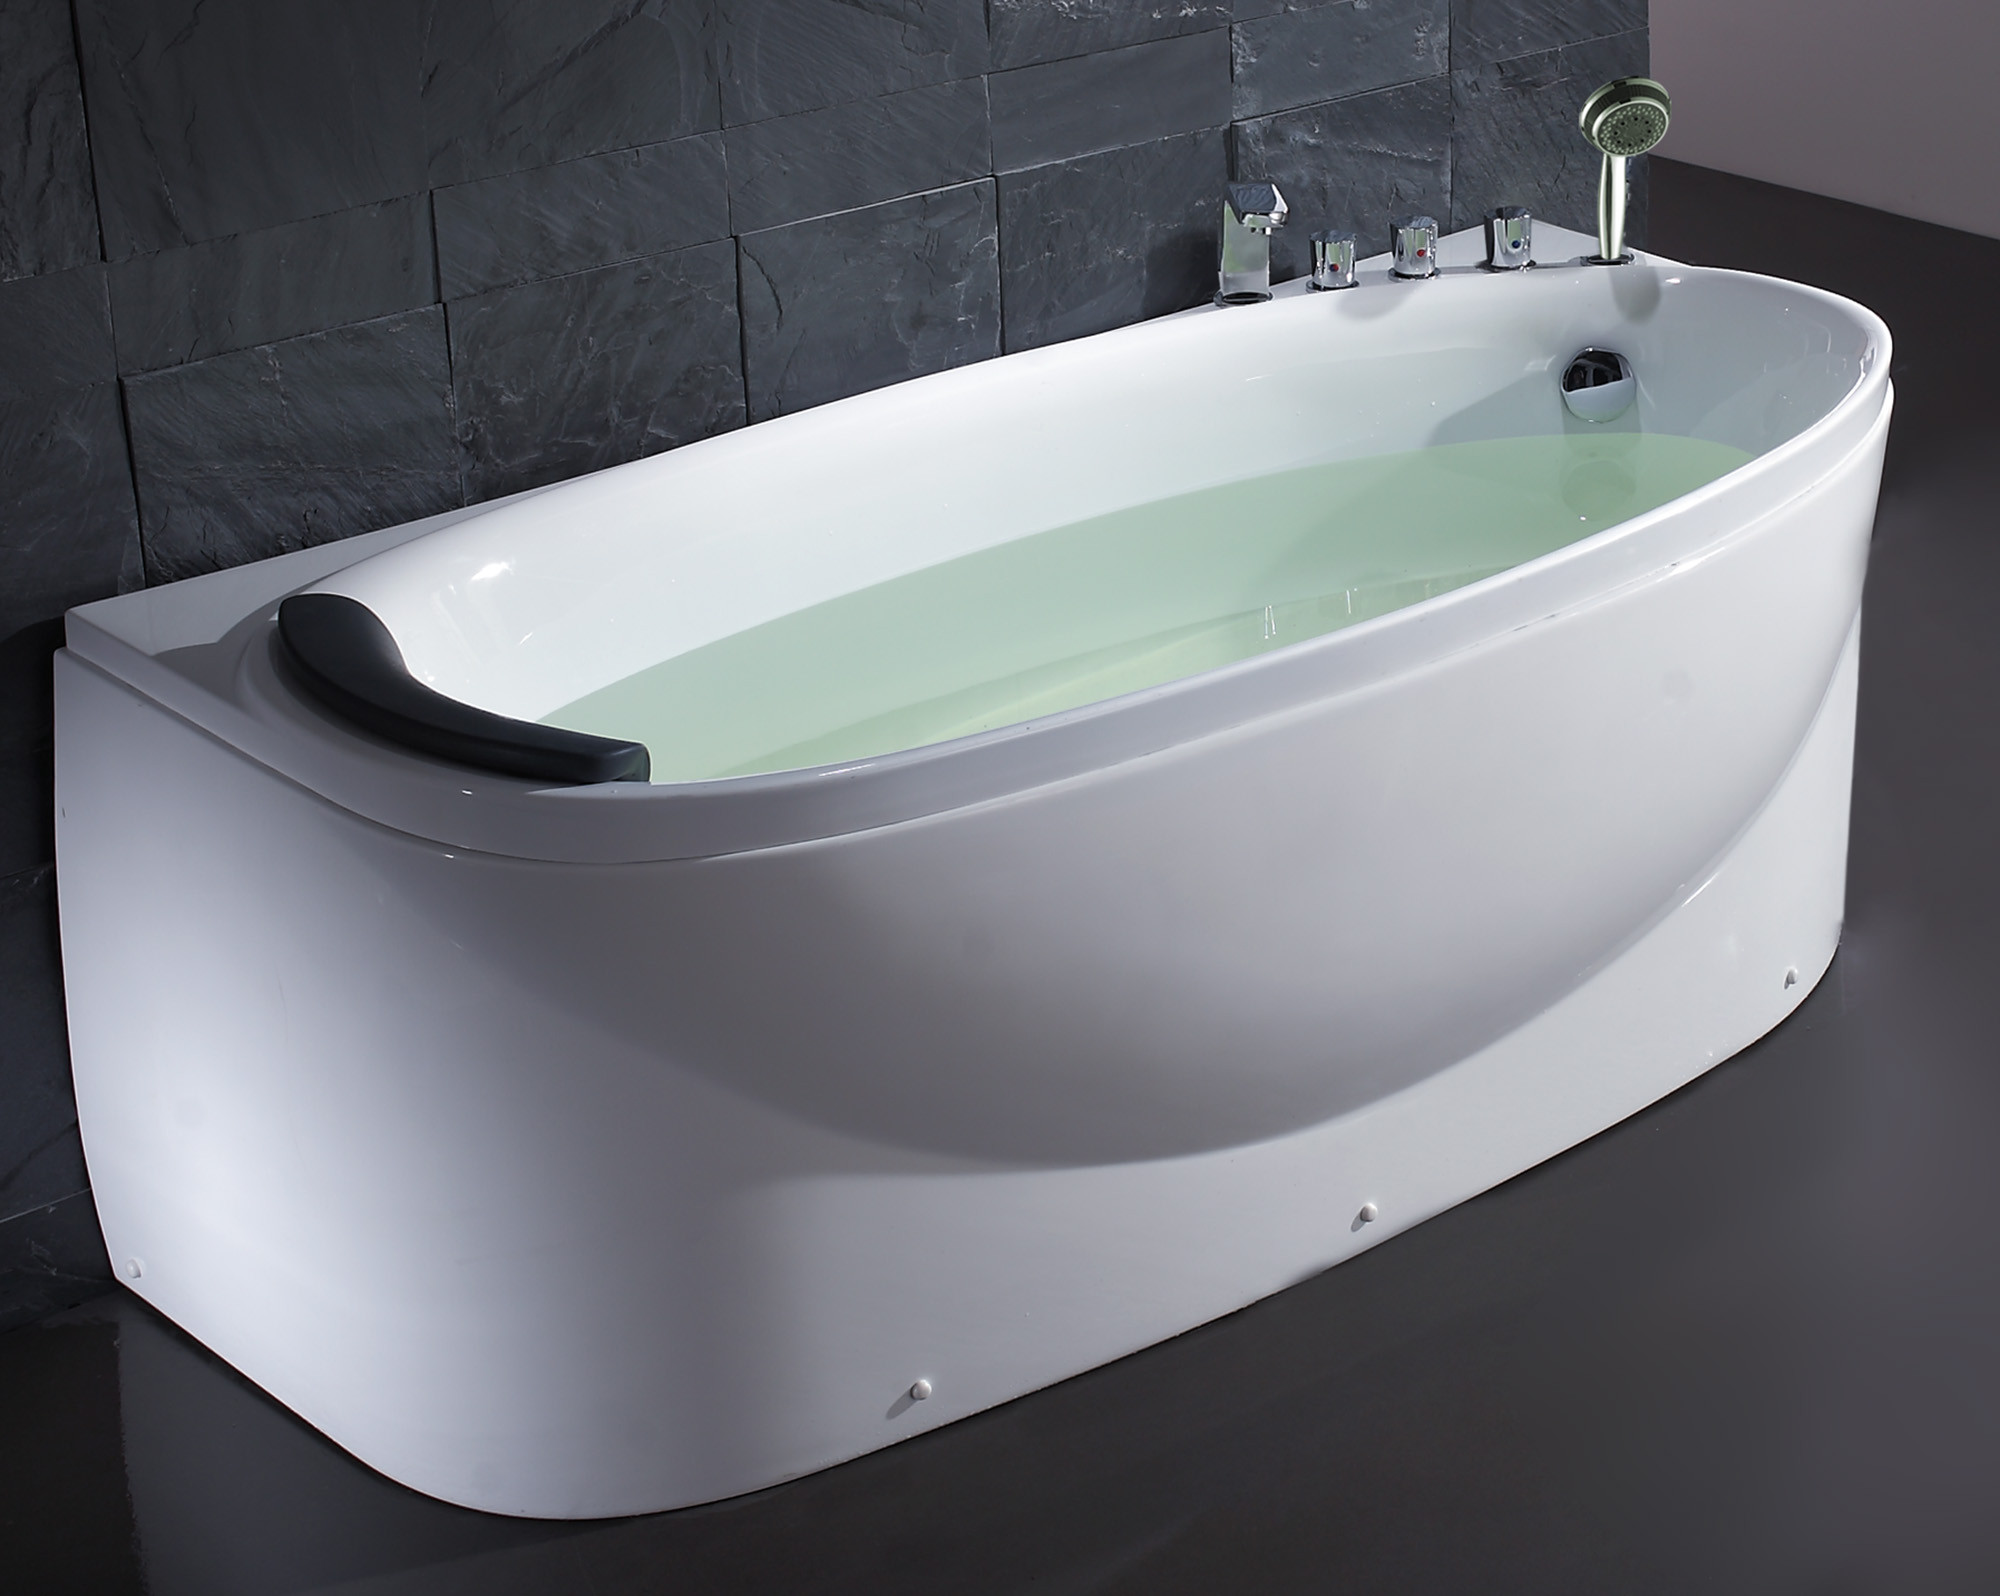 EAGO LK1104-R Acrylic White 6' Soaking Tub with Fixtures And Right Drain